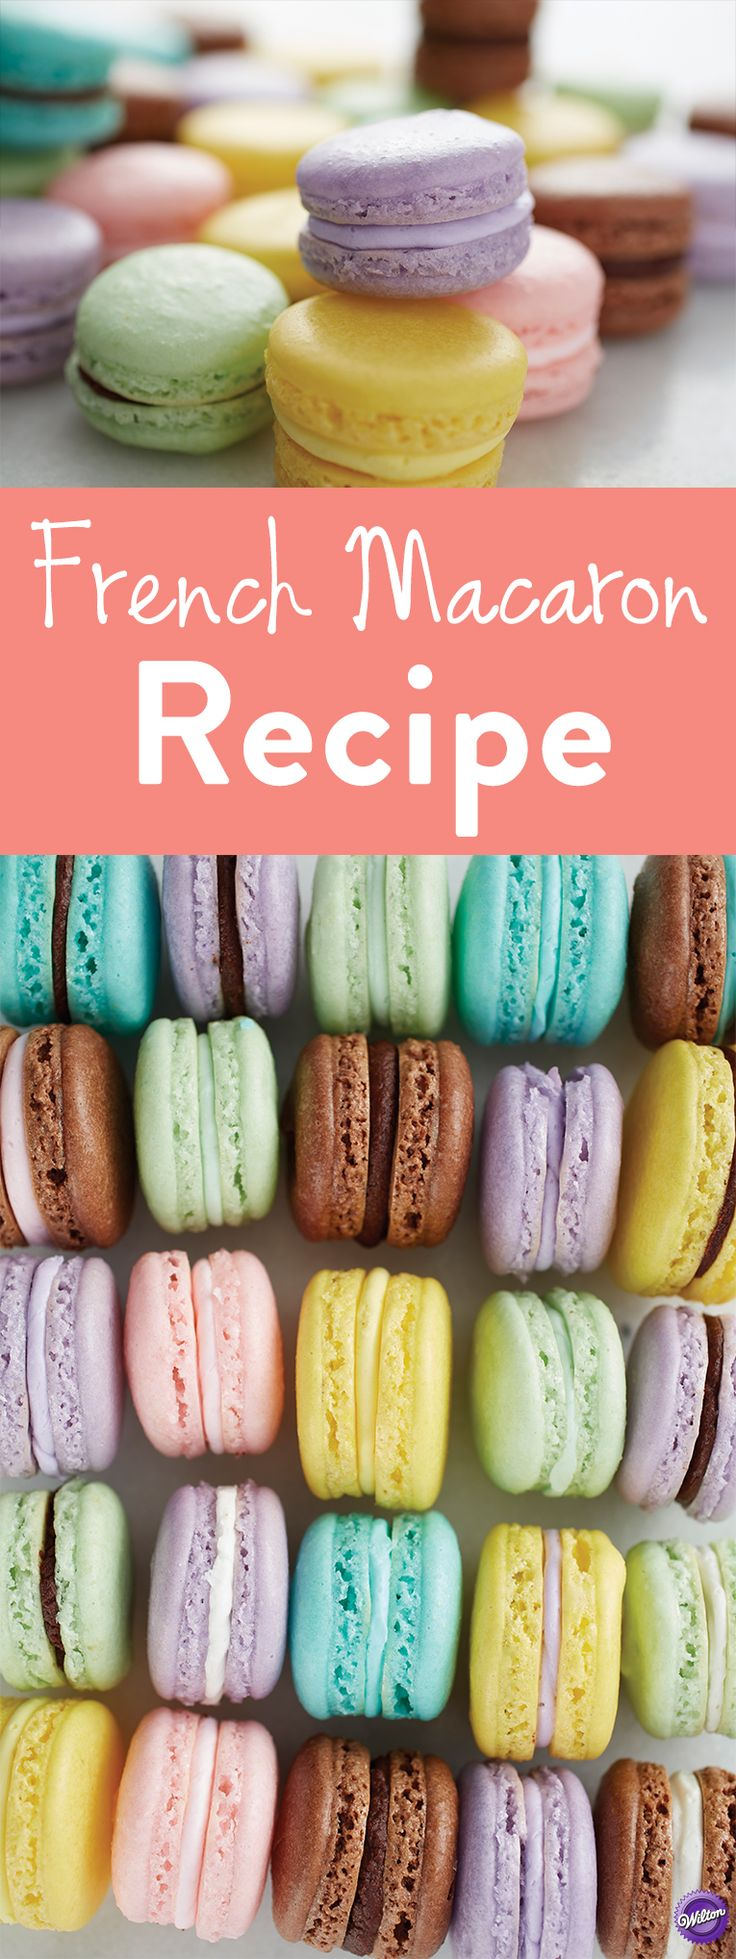 French Macaron Recipe - Impress friends and family by making your own batch of French Macarons. Great for wedding and party favors or for giving as gifts, French macarons are delicate and delicious. Mix and match colors and flavors to create treats to best suit the occasion.